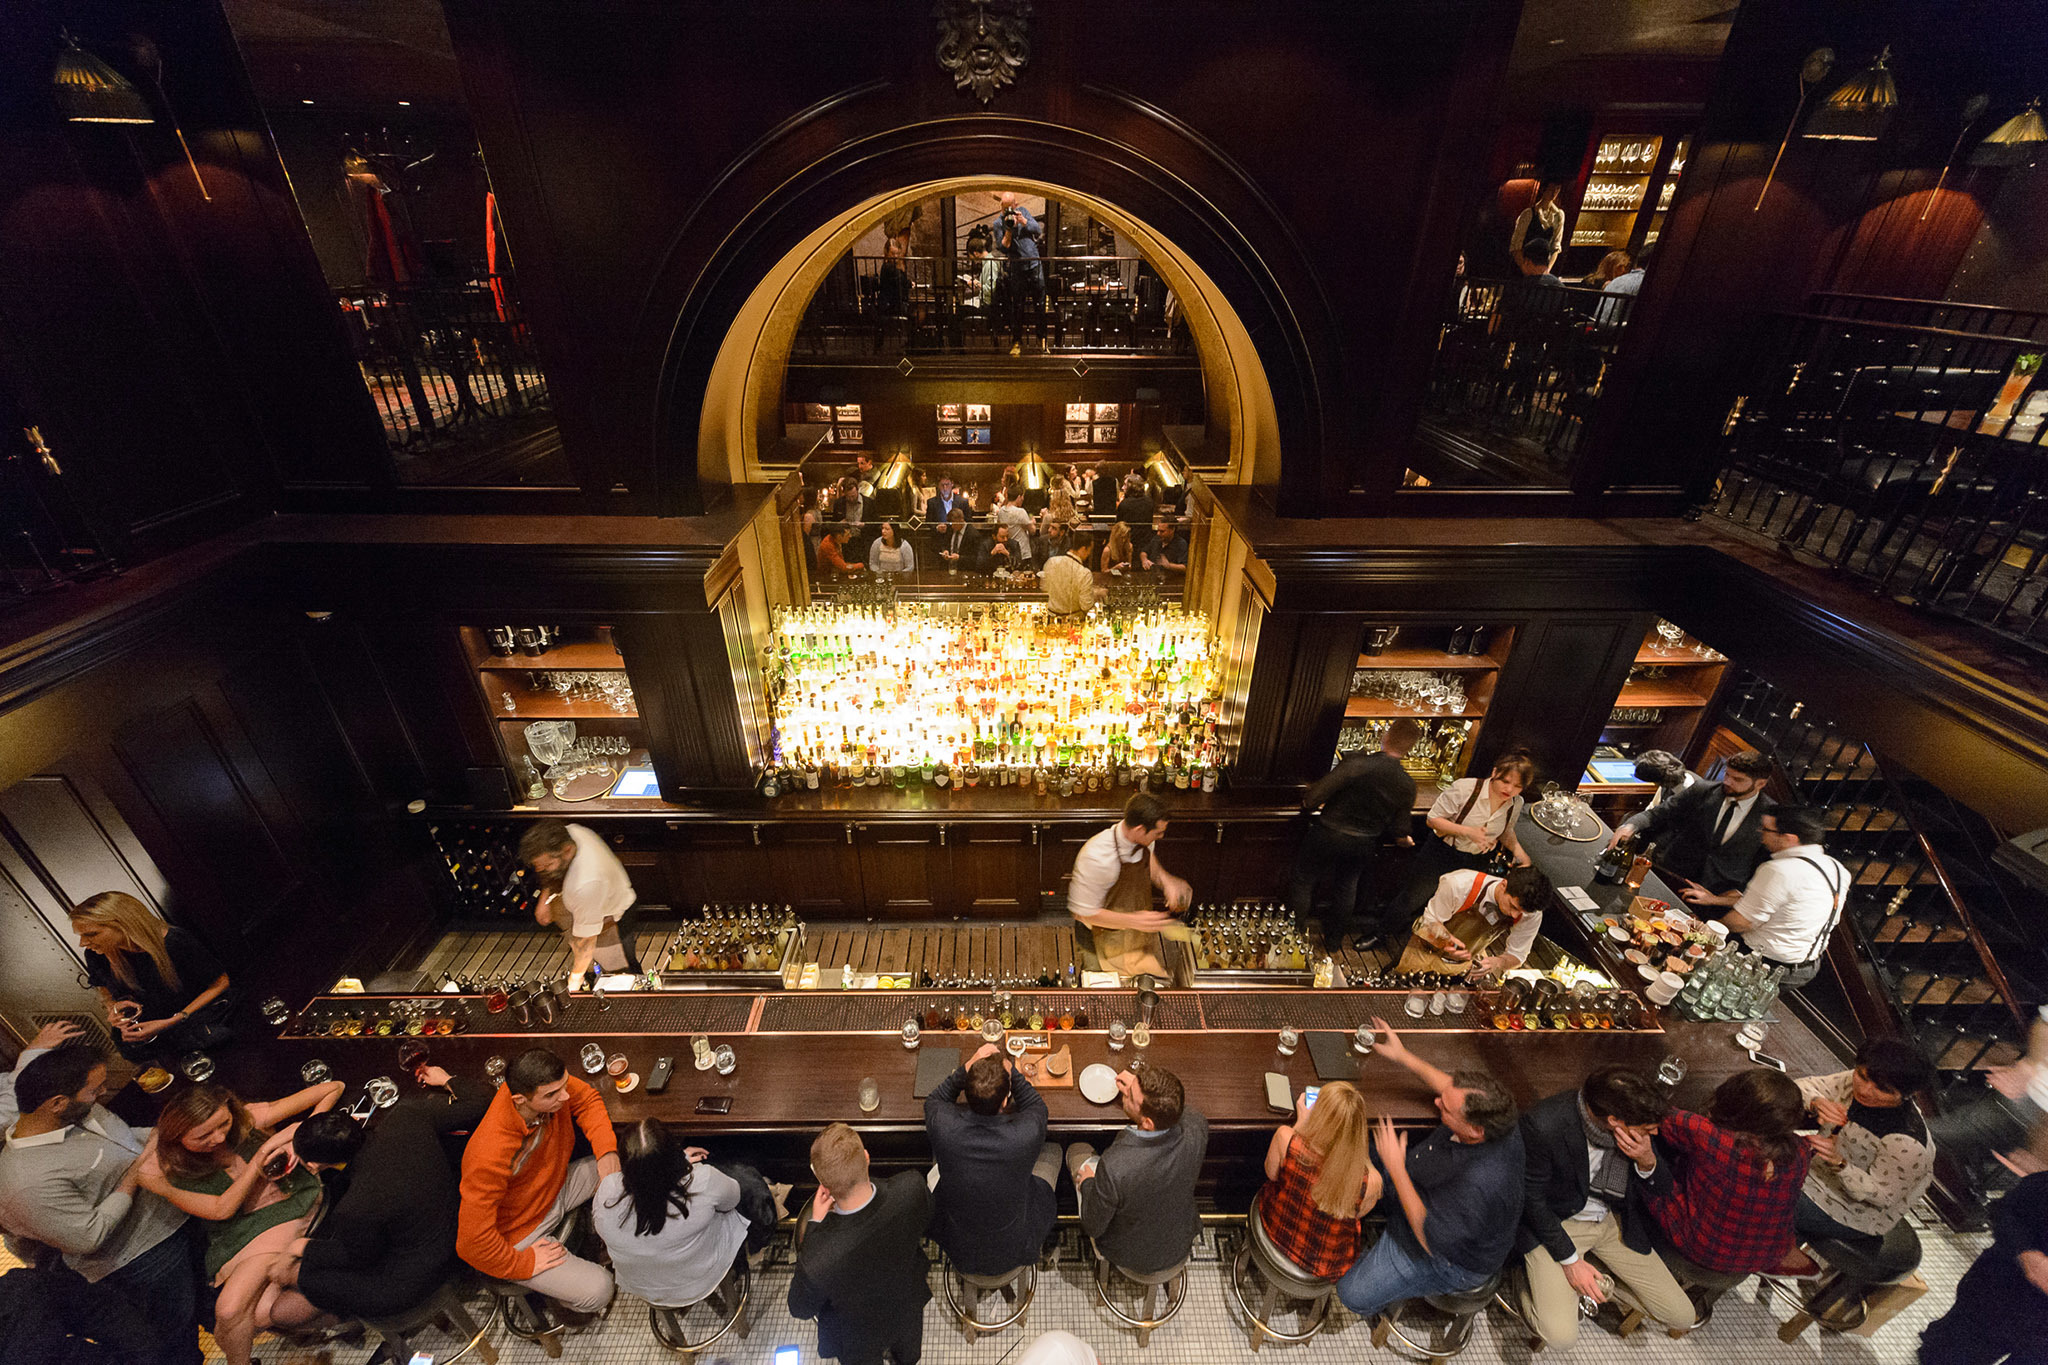 The best bars in New York, as chosen by bar experts